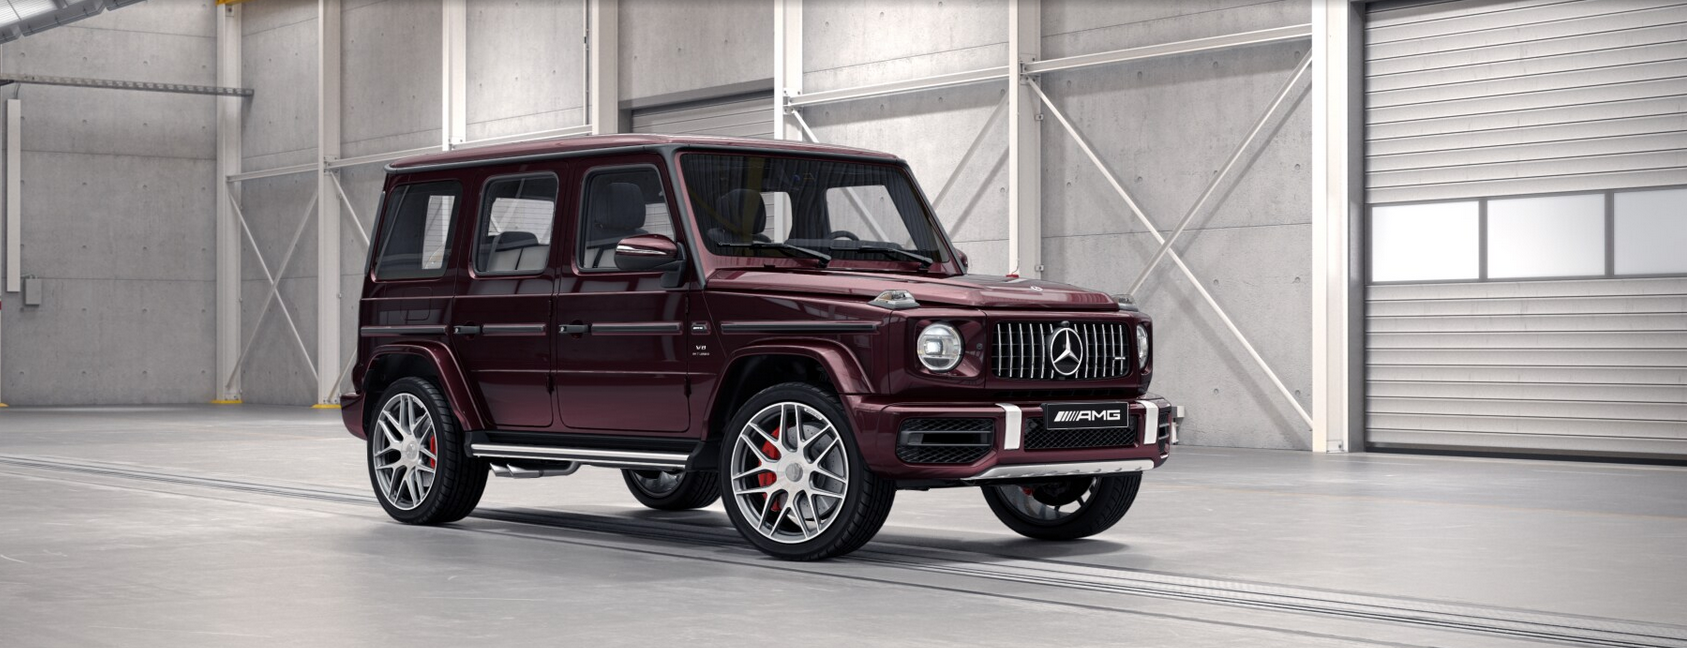 Mercedes Gle 43 Amg >> What is the perfect color for the new G 63 AMG? - AMG In Years